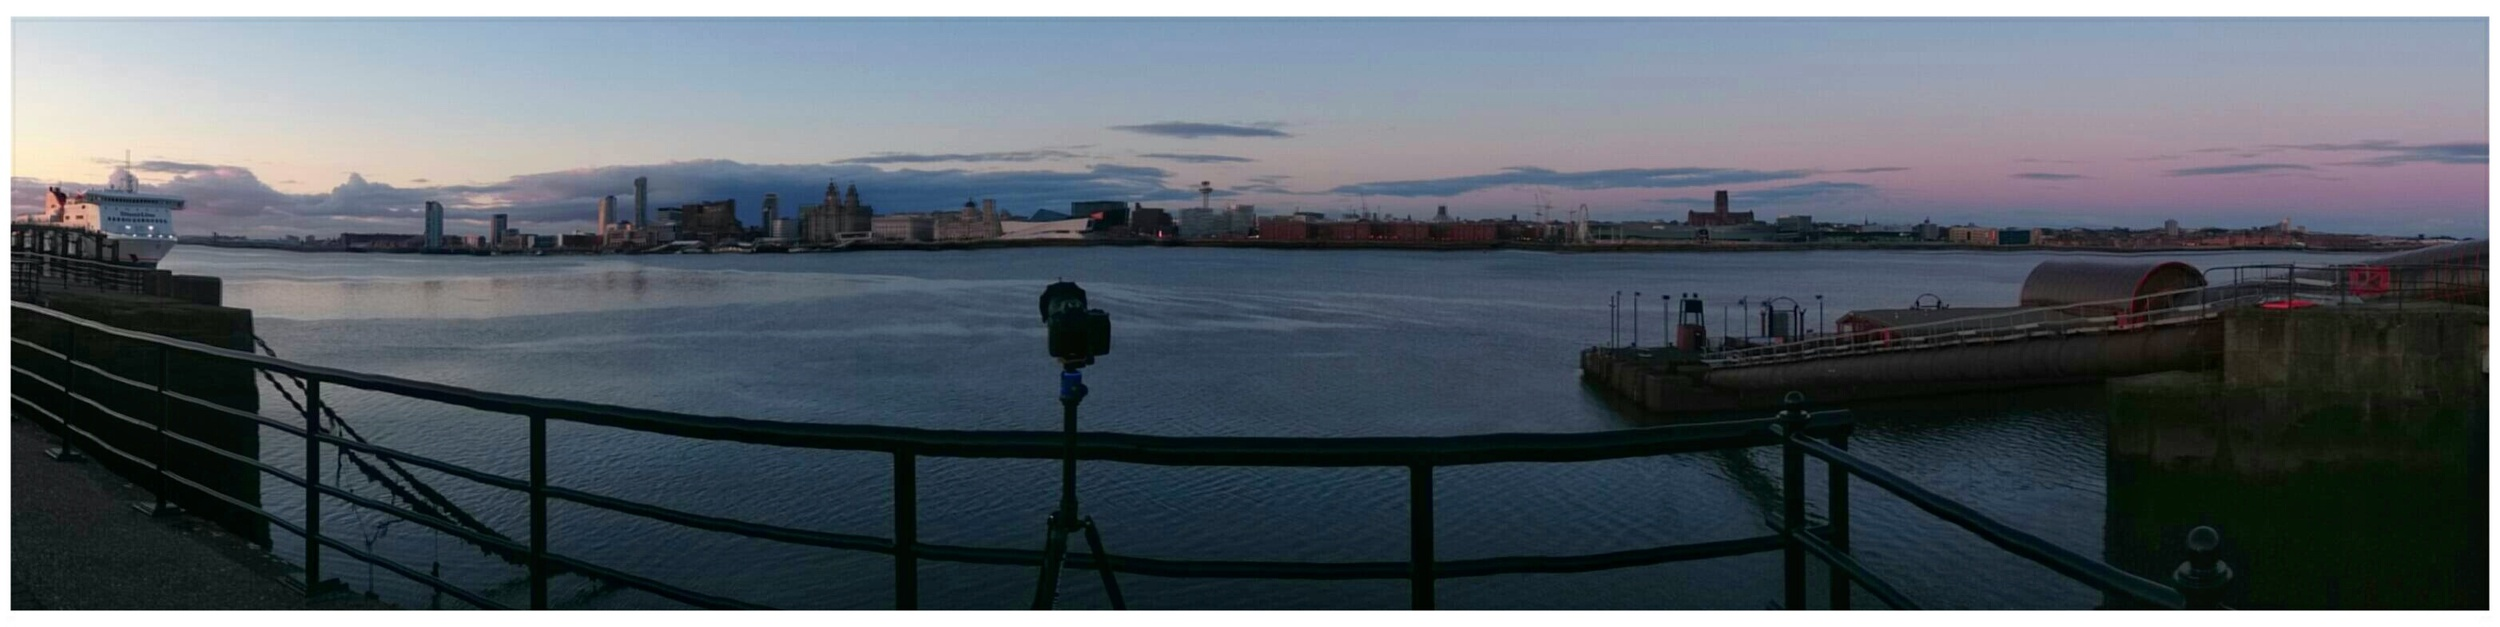 Second pano shot of my camera set on a tripod overlooking the River Mersey.